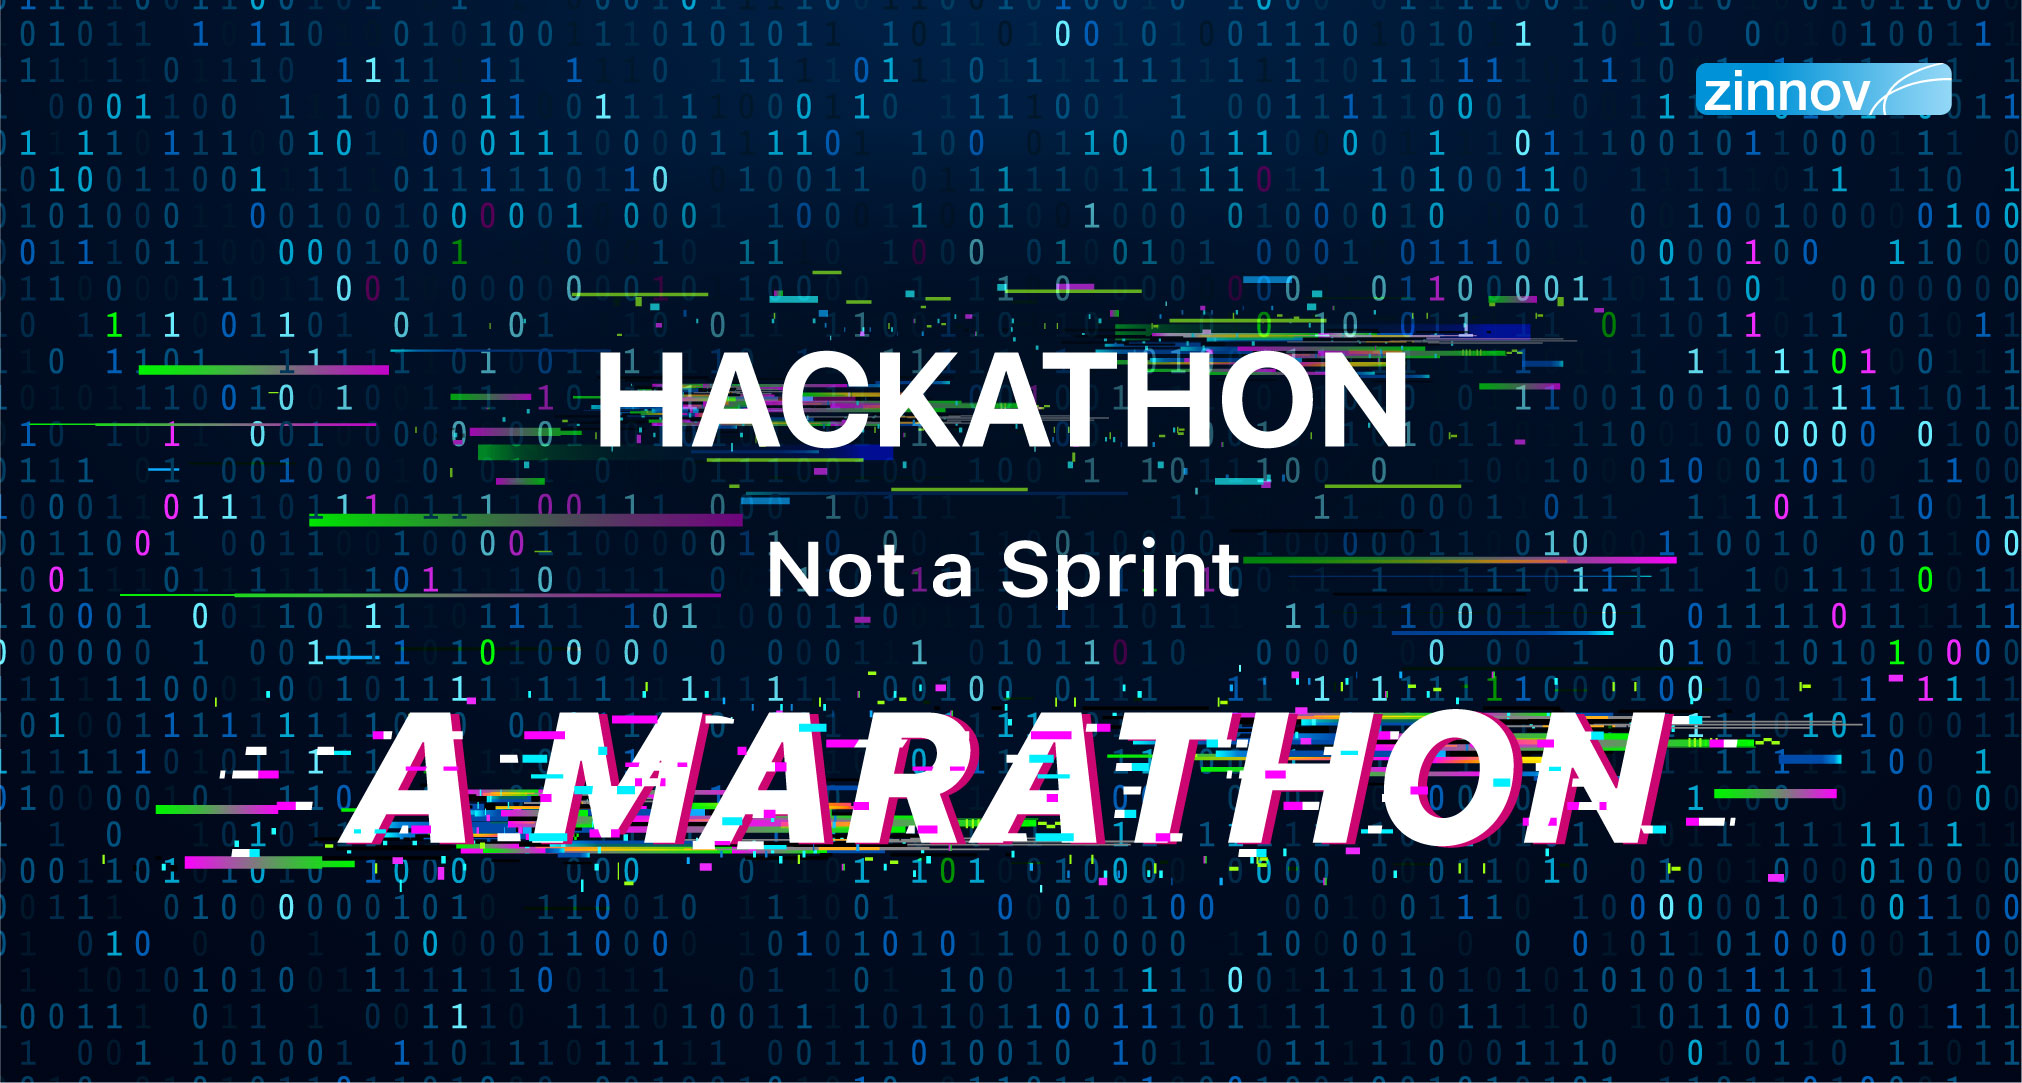 How do hackathons work